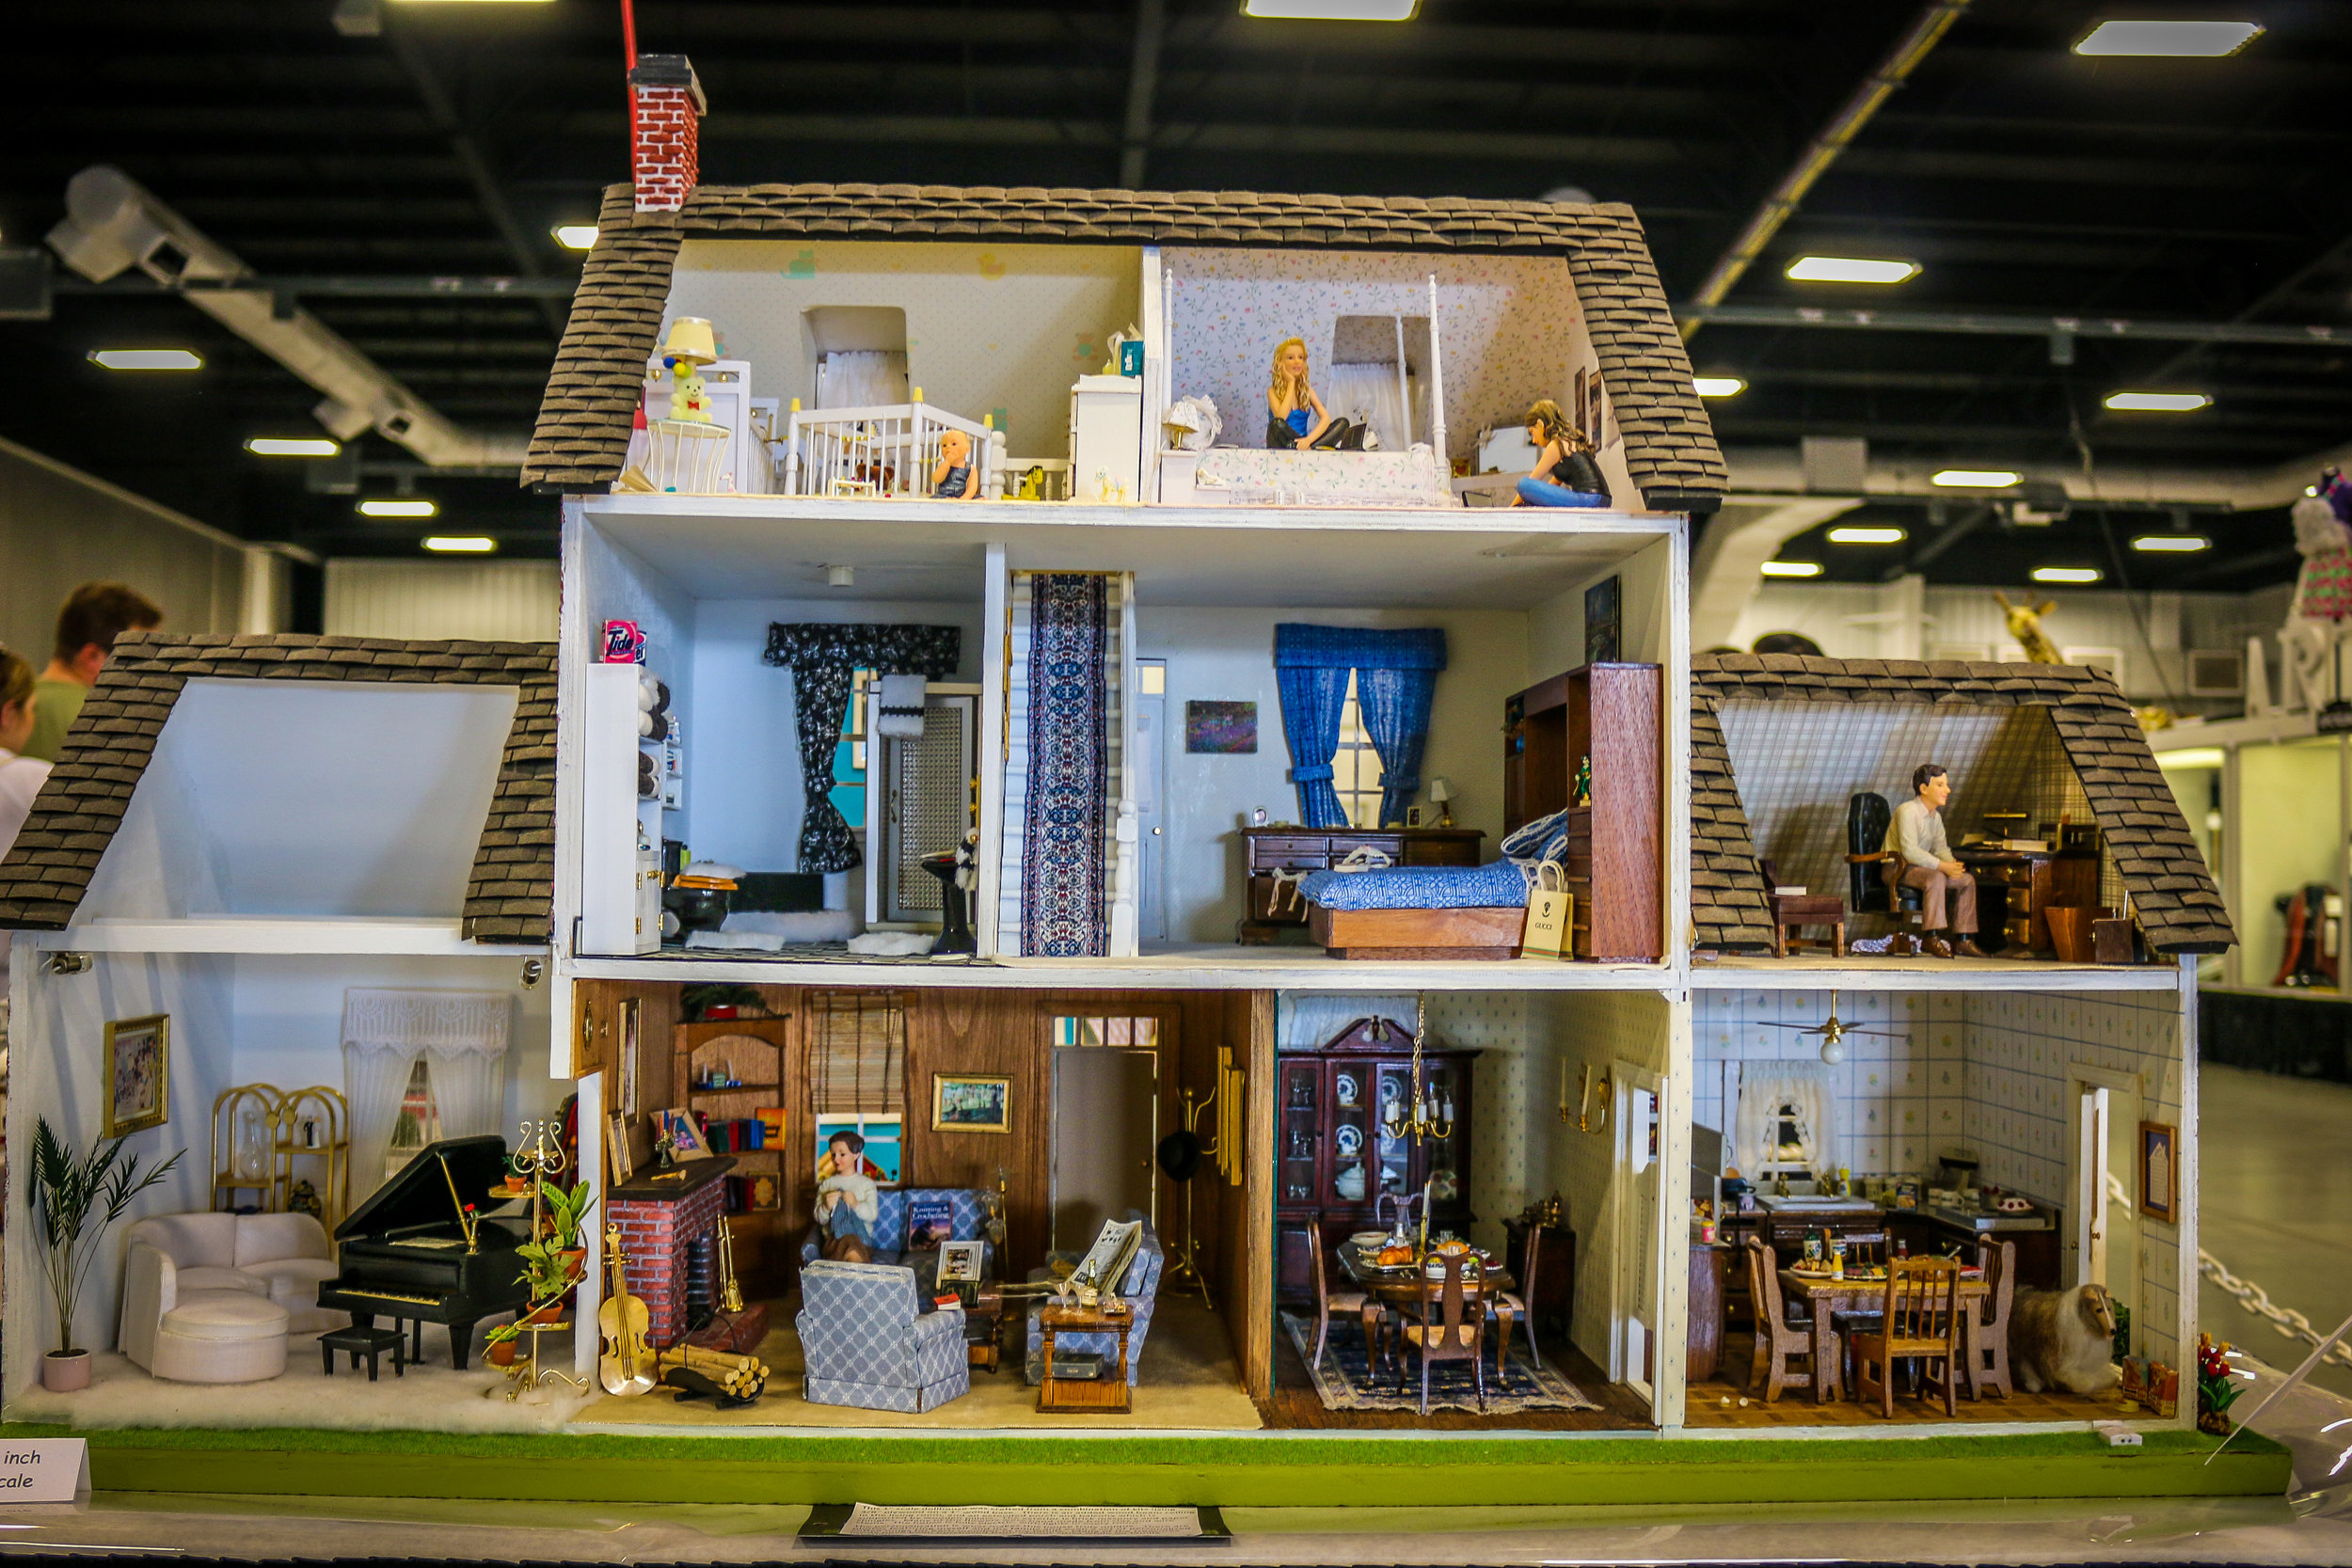 ohio state fair columbus 2018 photos doll house